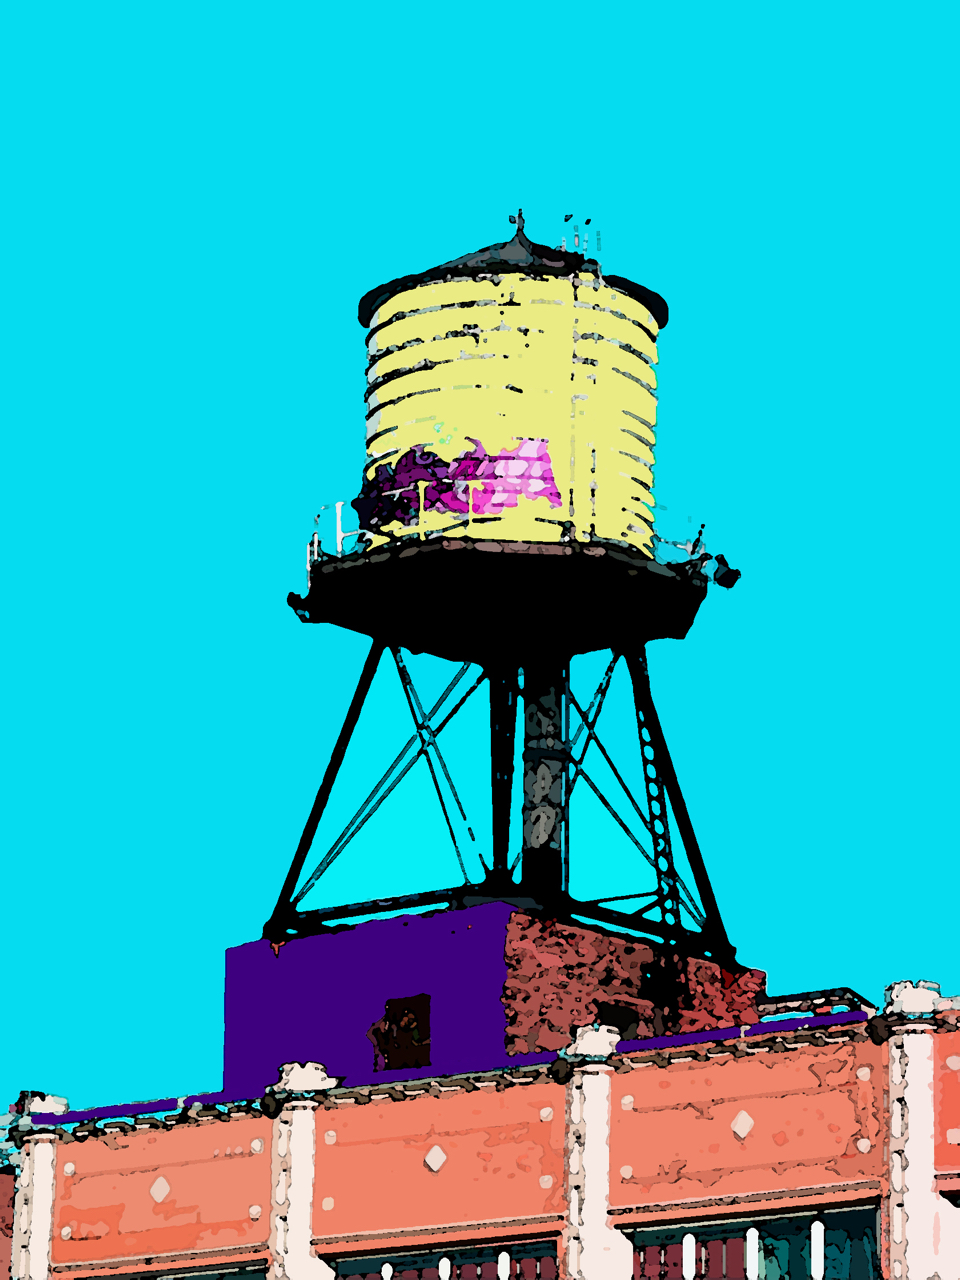 West Town Watertank (Chicago Avenue), digitally enhanced photograph, 2005